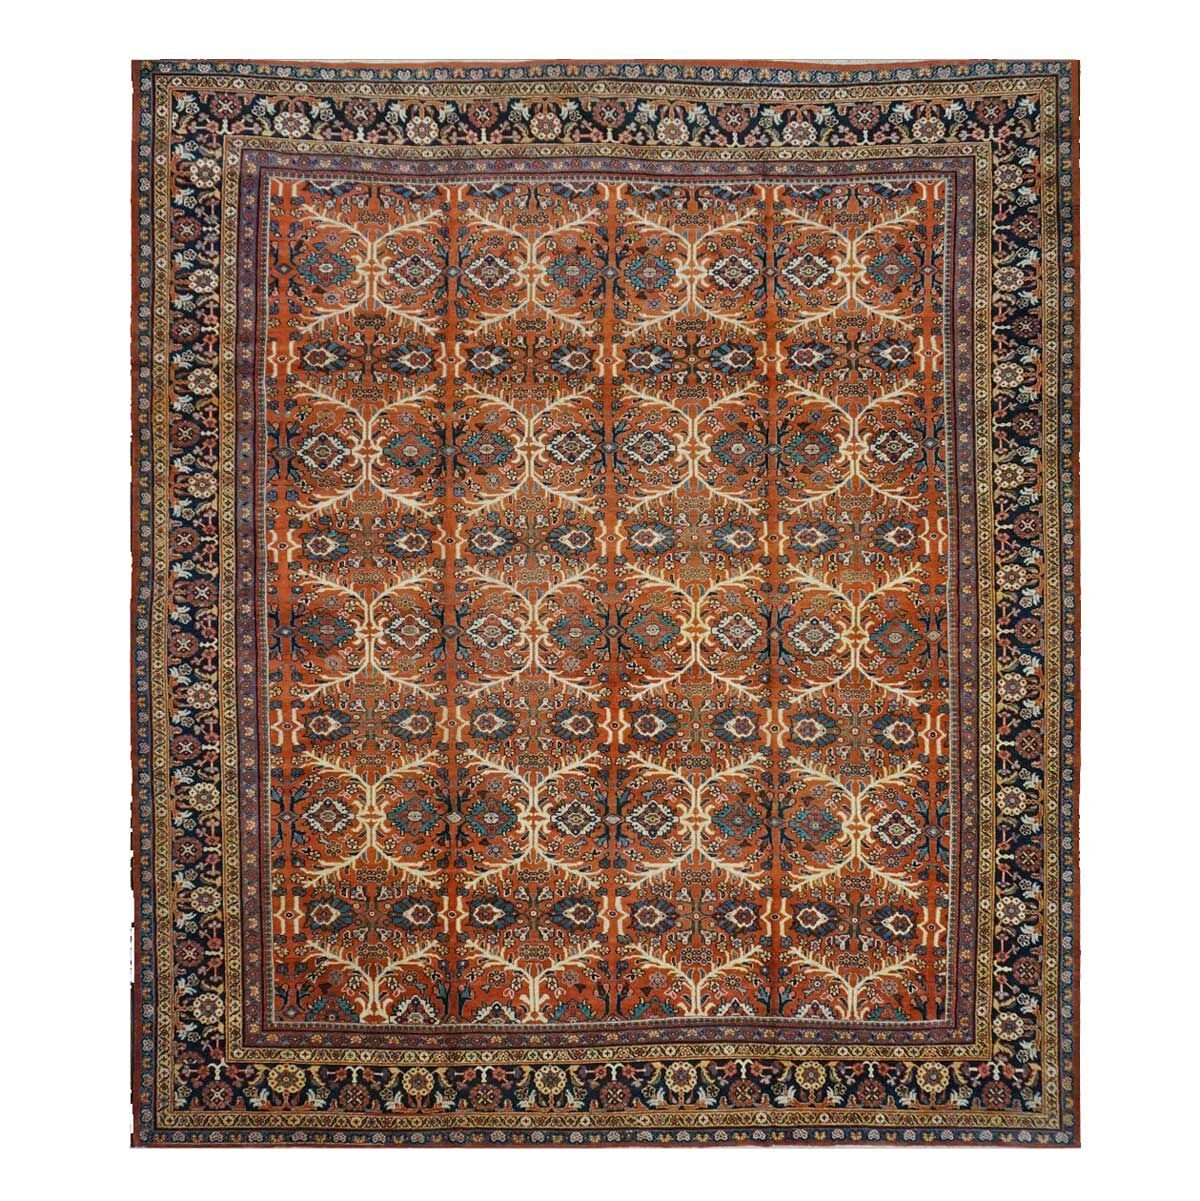 1140955 Antique Wool Area Rug from Ashly Fine Rugs